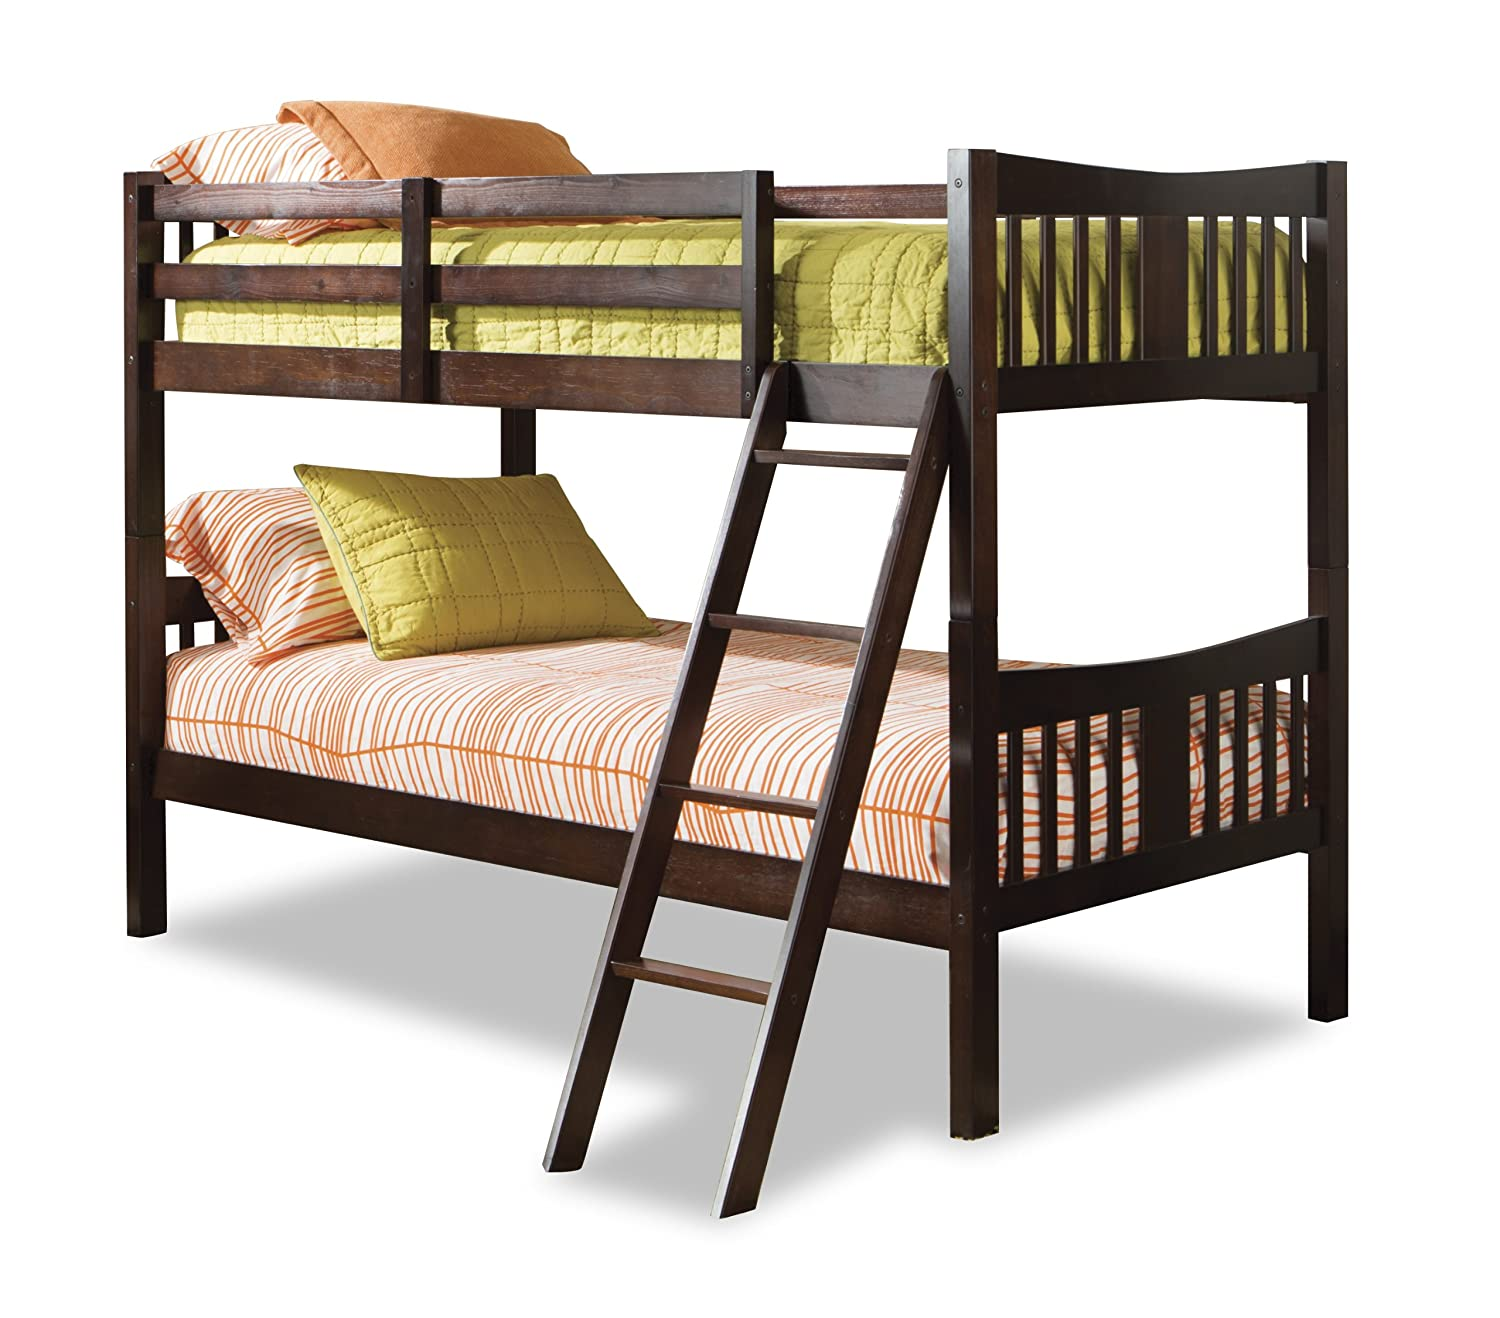 Twin bunk beds espresso wood loft kids bedroom furniture for Furniture 123 bunk beds